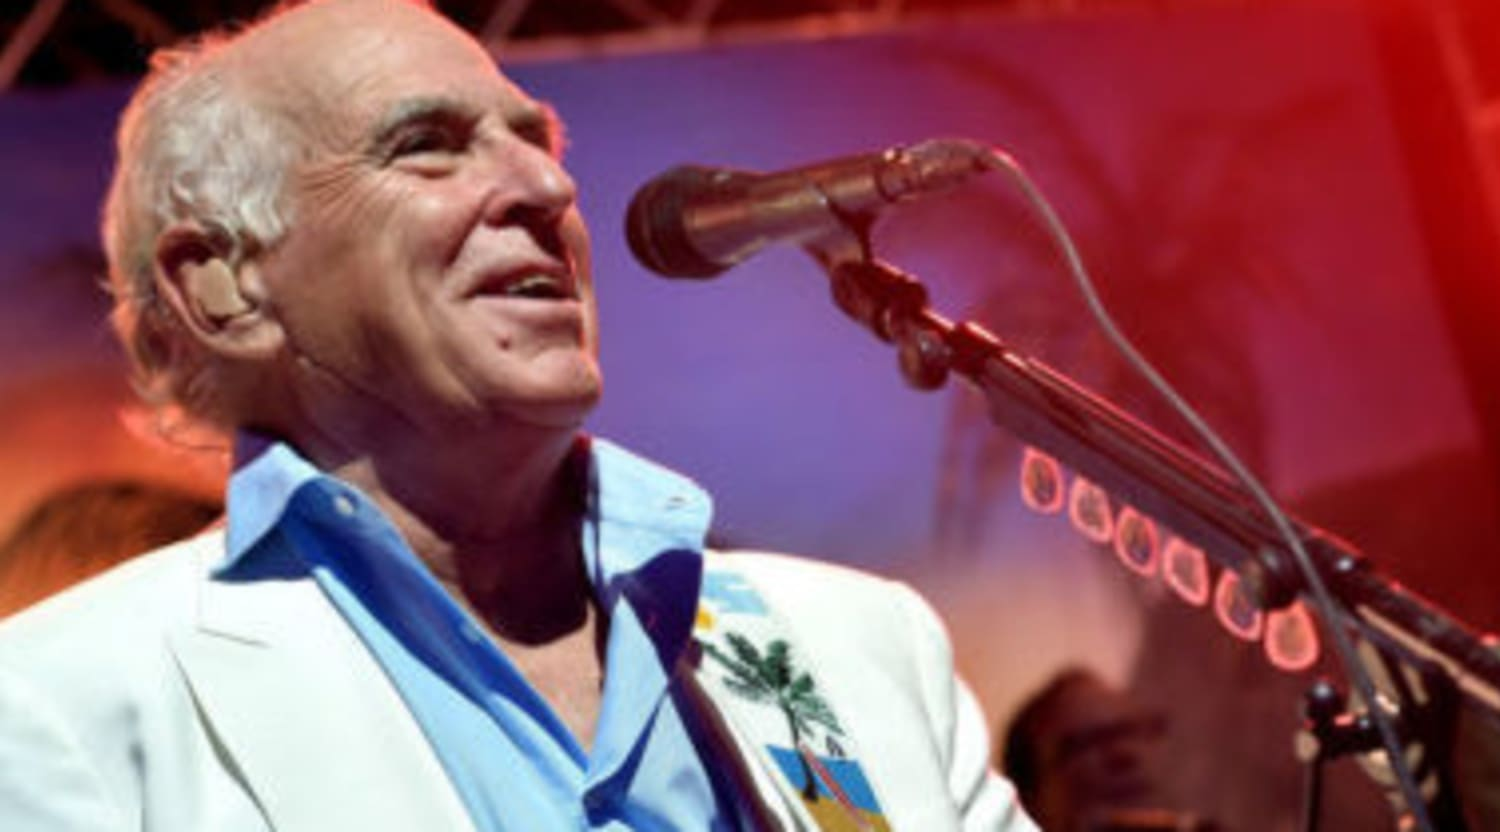 Jimmy Buffett tickets - Jimmy Buffett Tour Dates on StubHub!